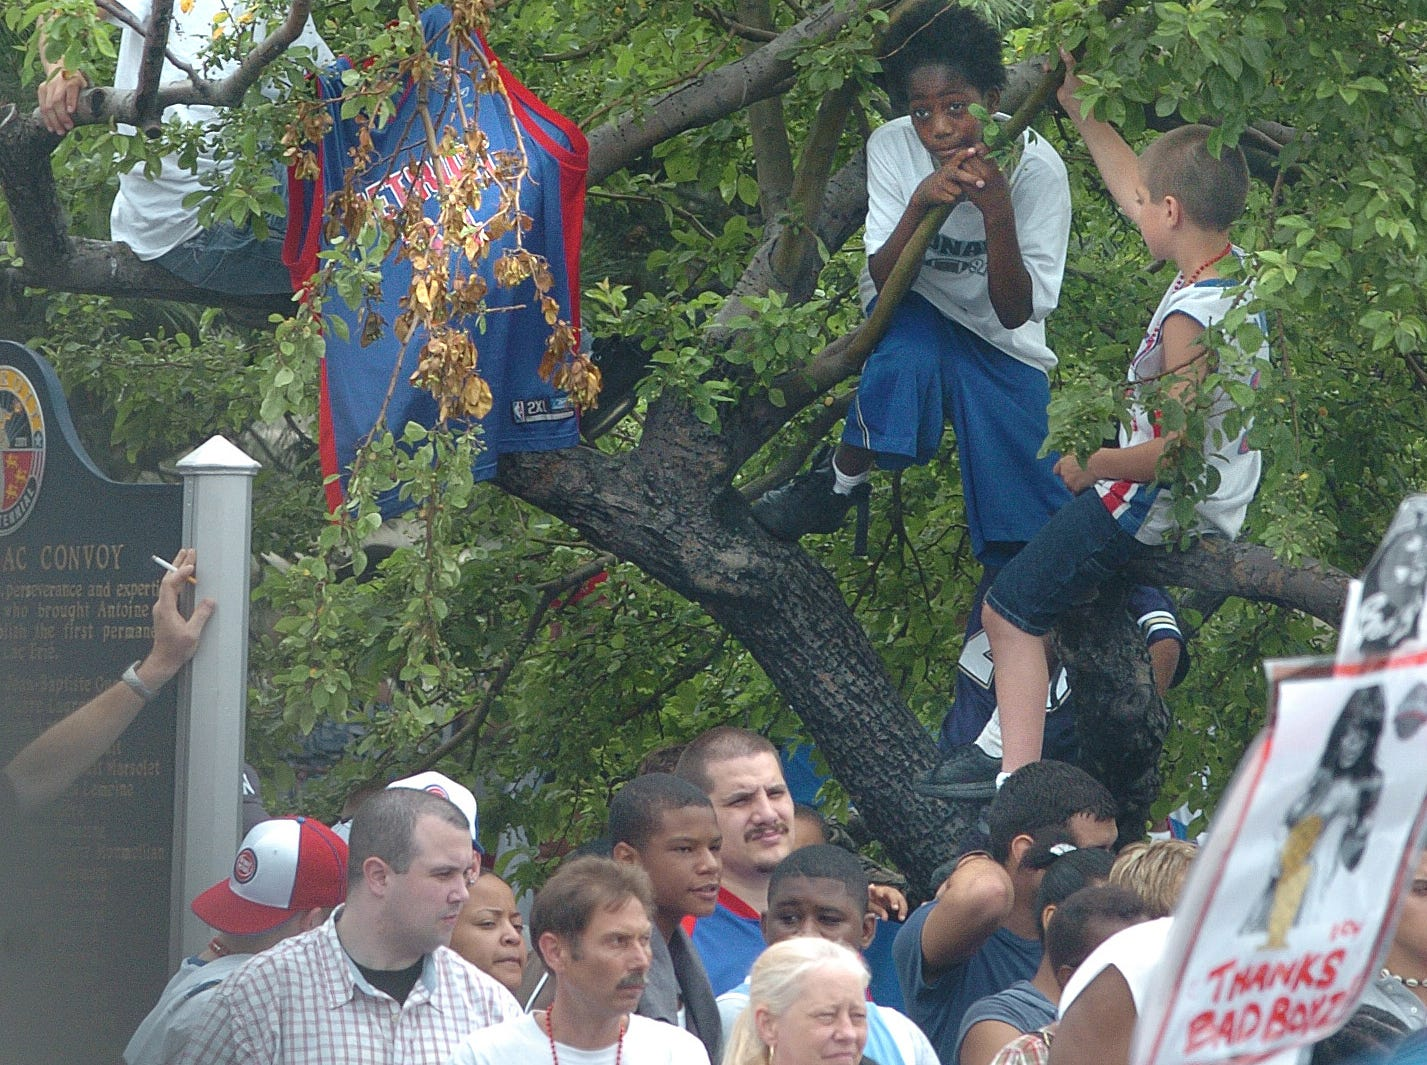 Kids climb up into the trees in Hart Plaza for a better view.